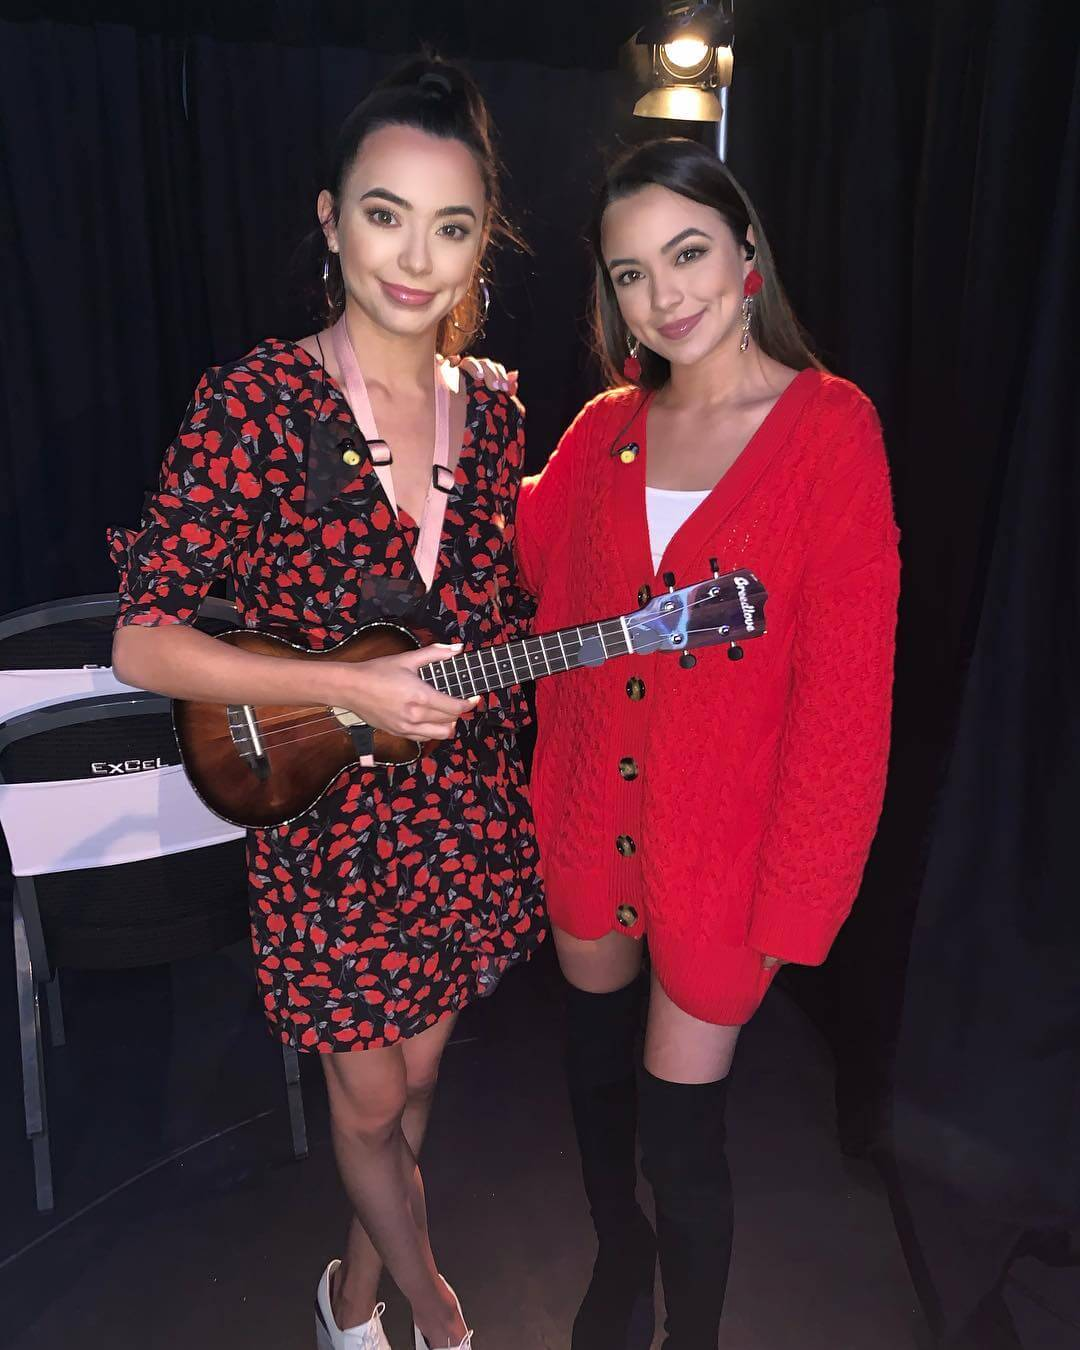 Merrell Twins sexy side pics